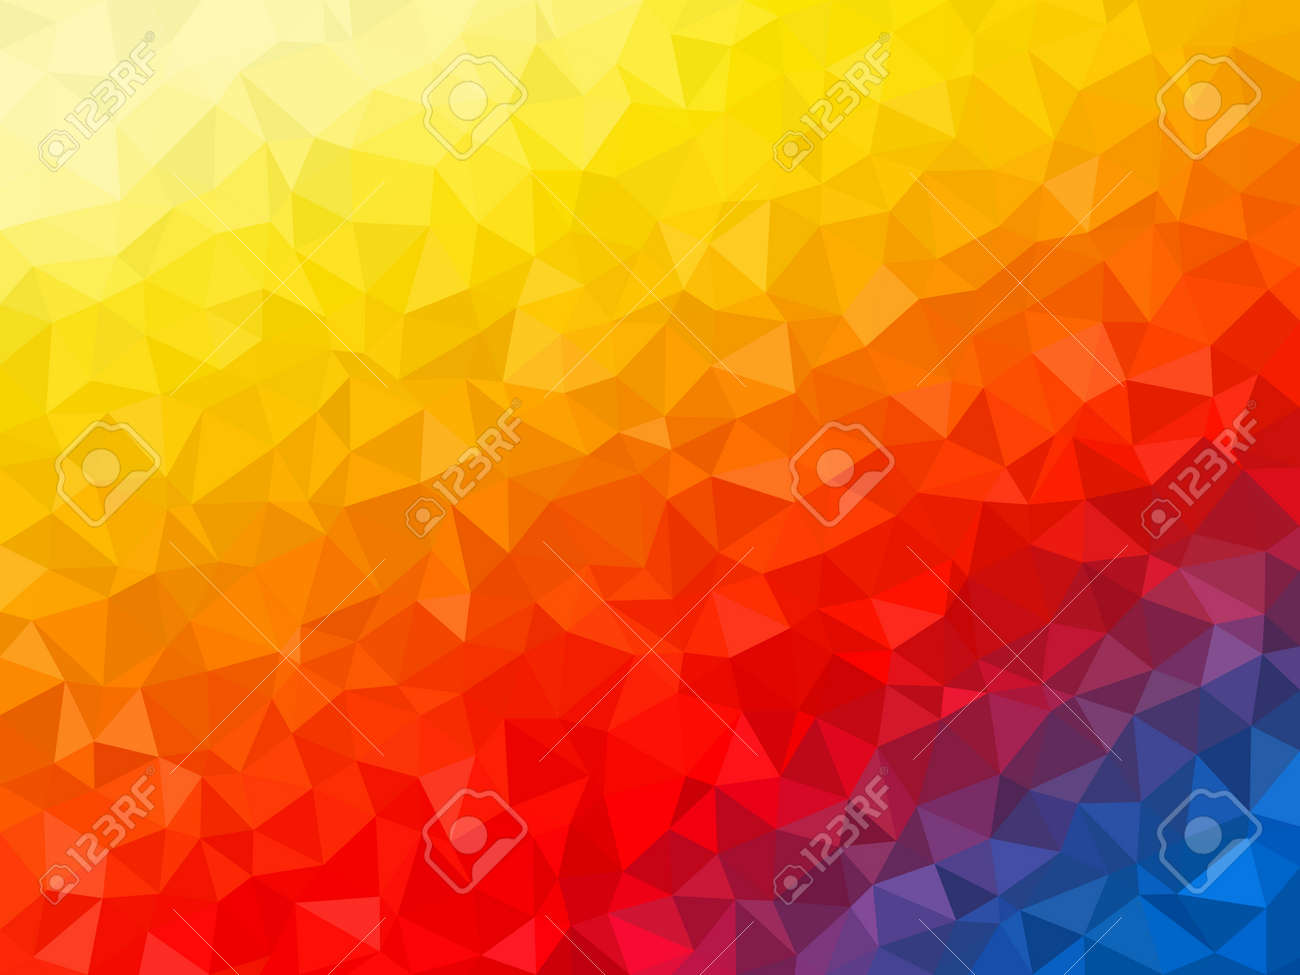 Abstract Background Colorful Geometrical Shapes Polygonal